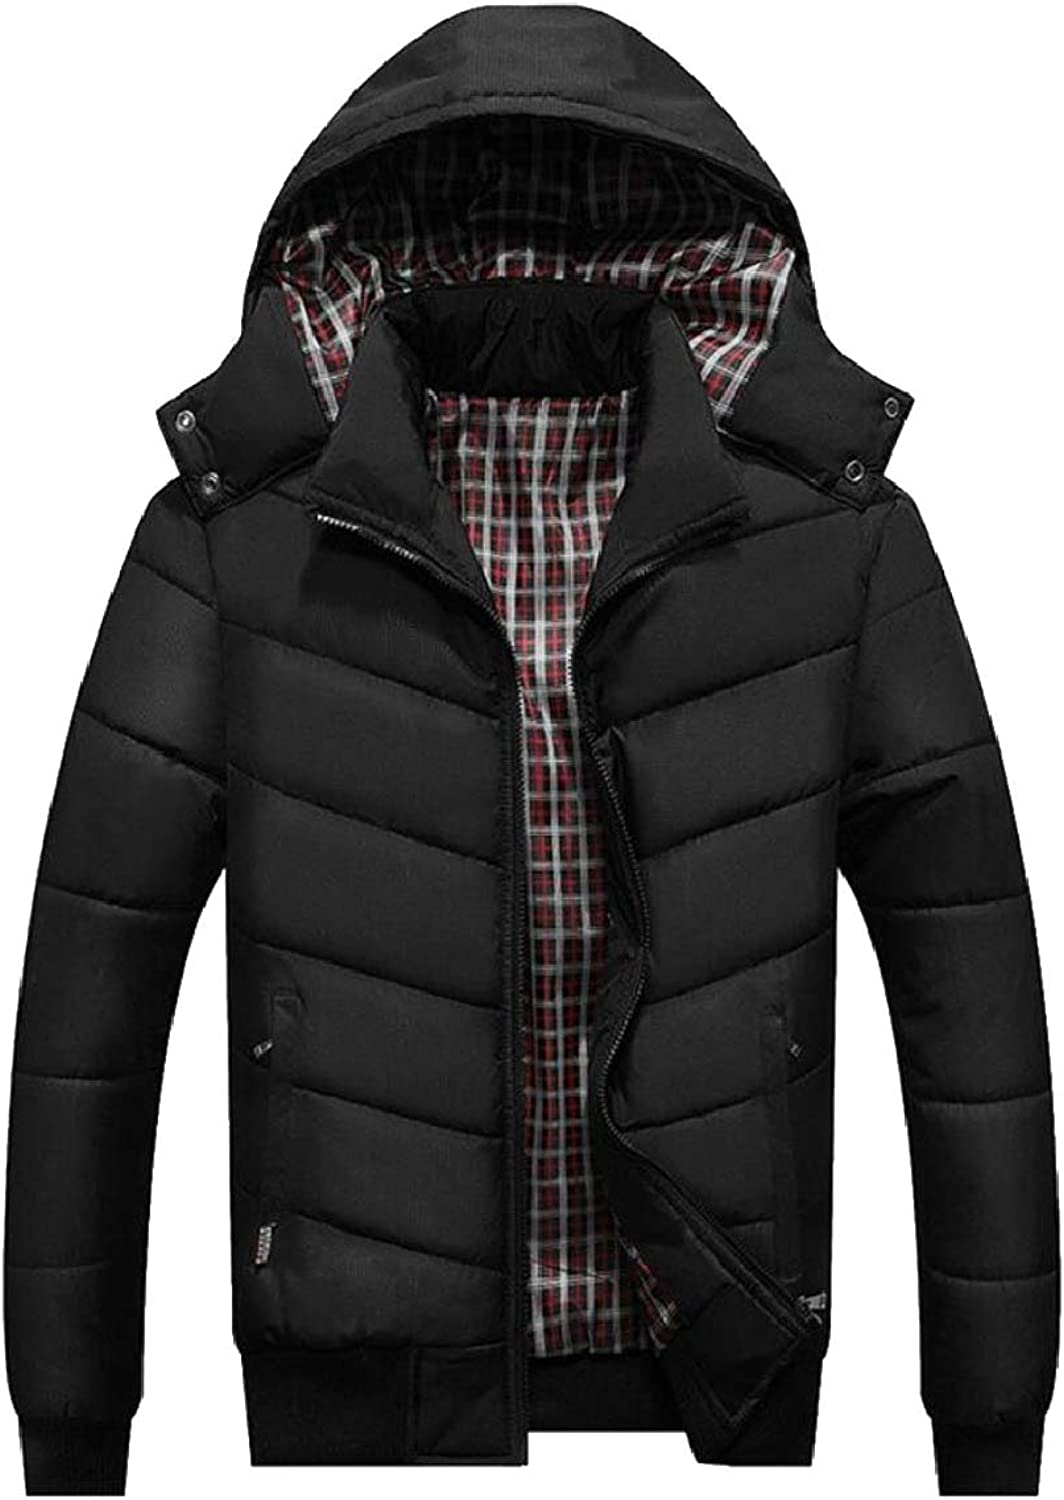 Omniscient Men Fashion Long Sleeve Plus Size Casual Loose Hooded Hooded Hooded Puffer Jacket Coat 2905c9